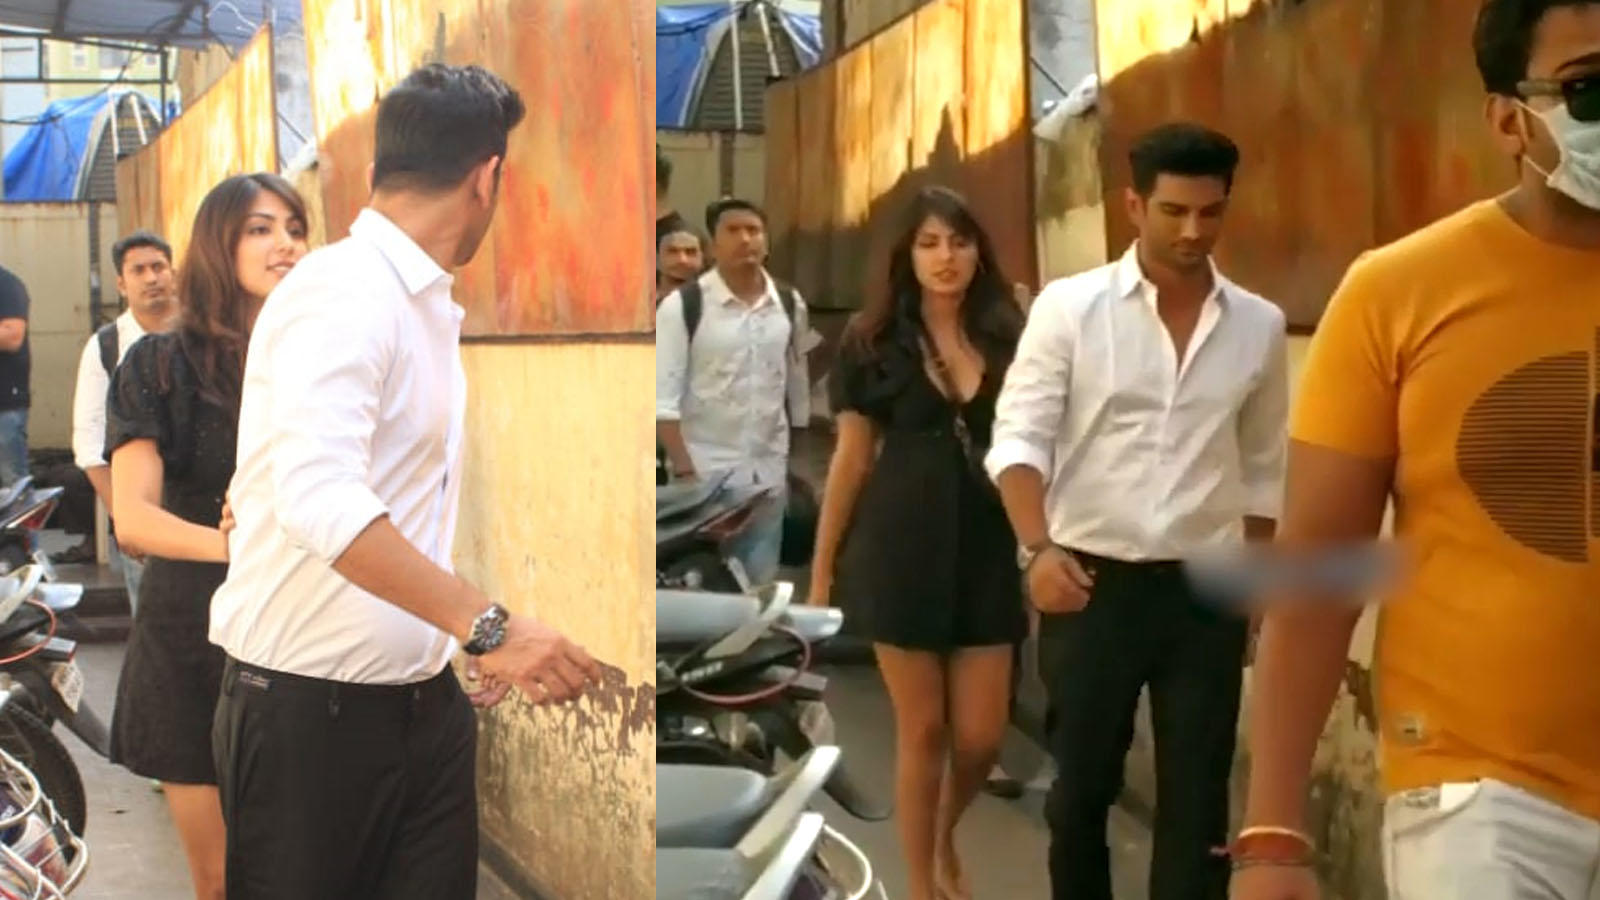 sushant-singh-rajput-and-his-rumoured-ladylove-rhea-chakraborty-avoid-posing-together-for-the-paps